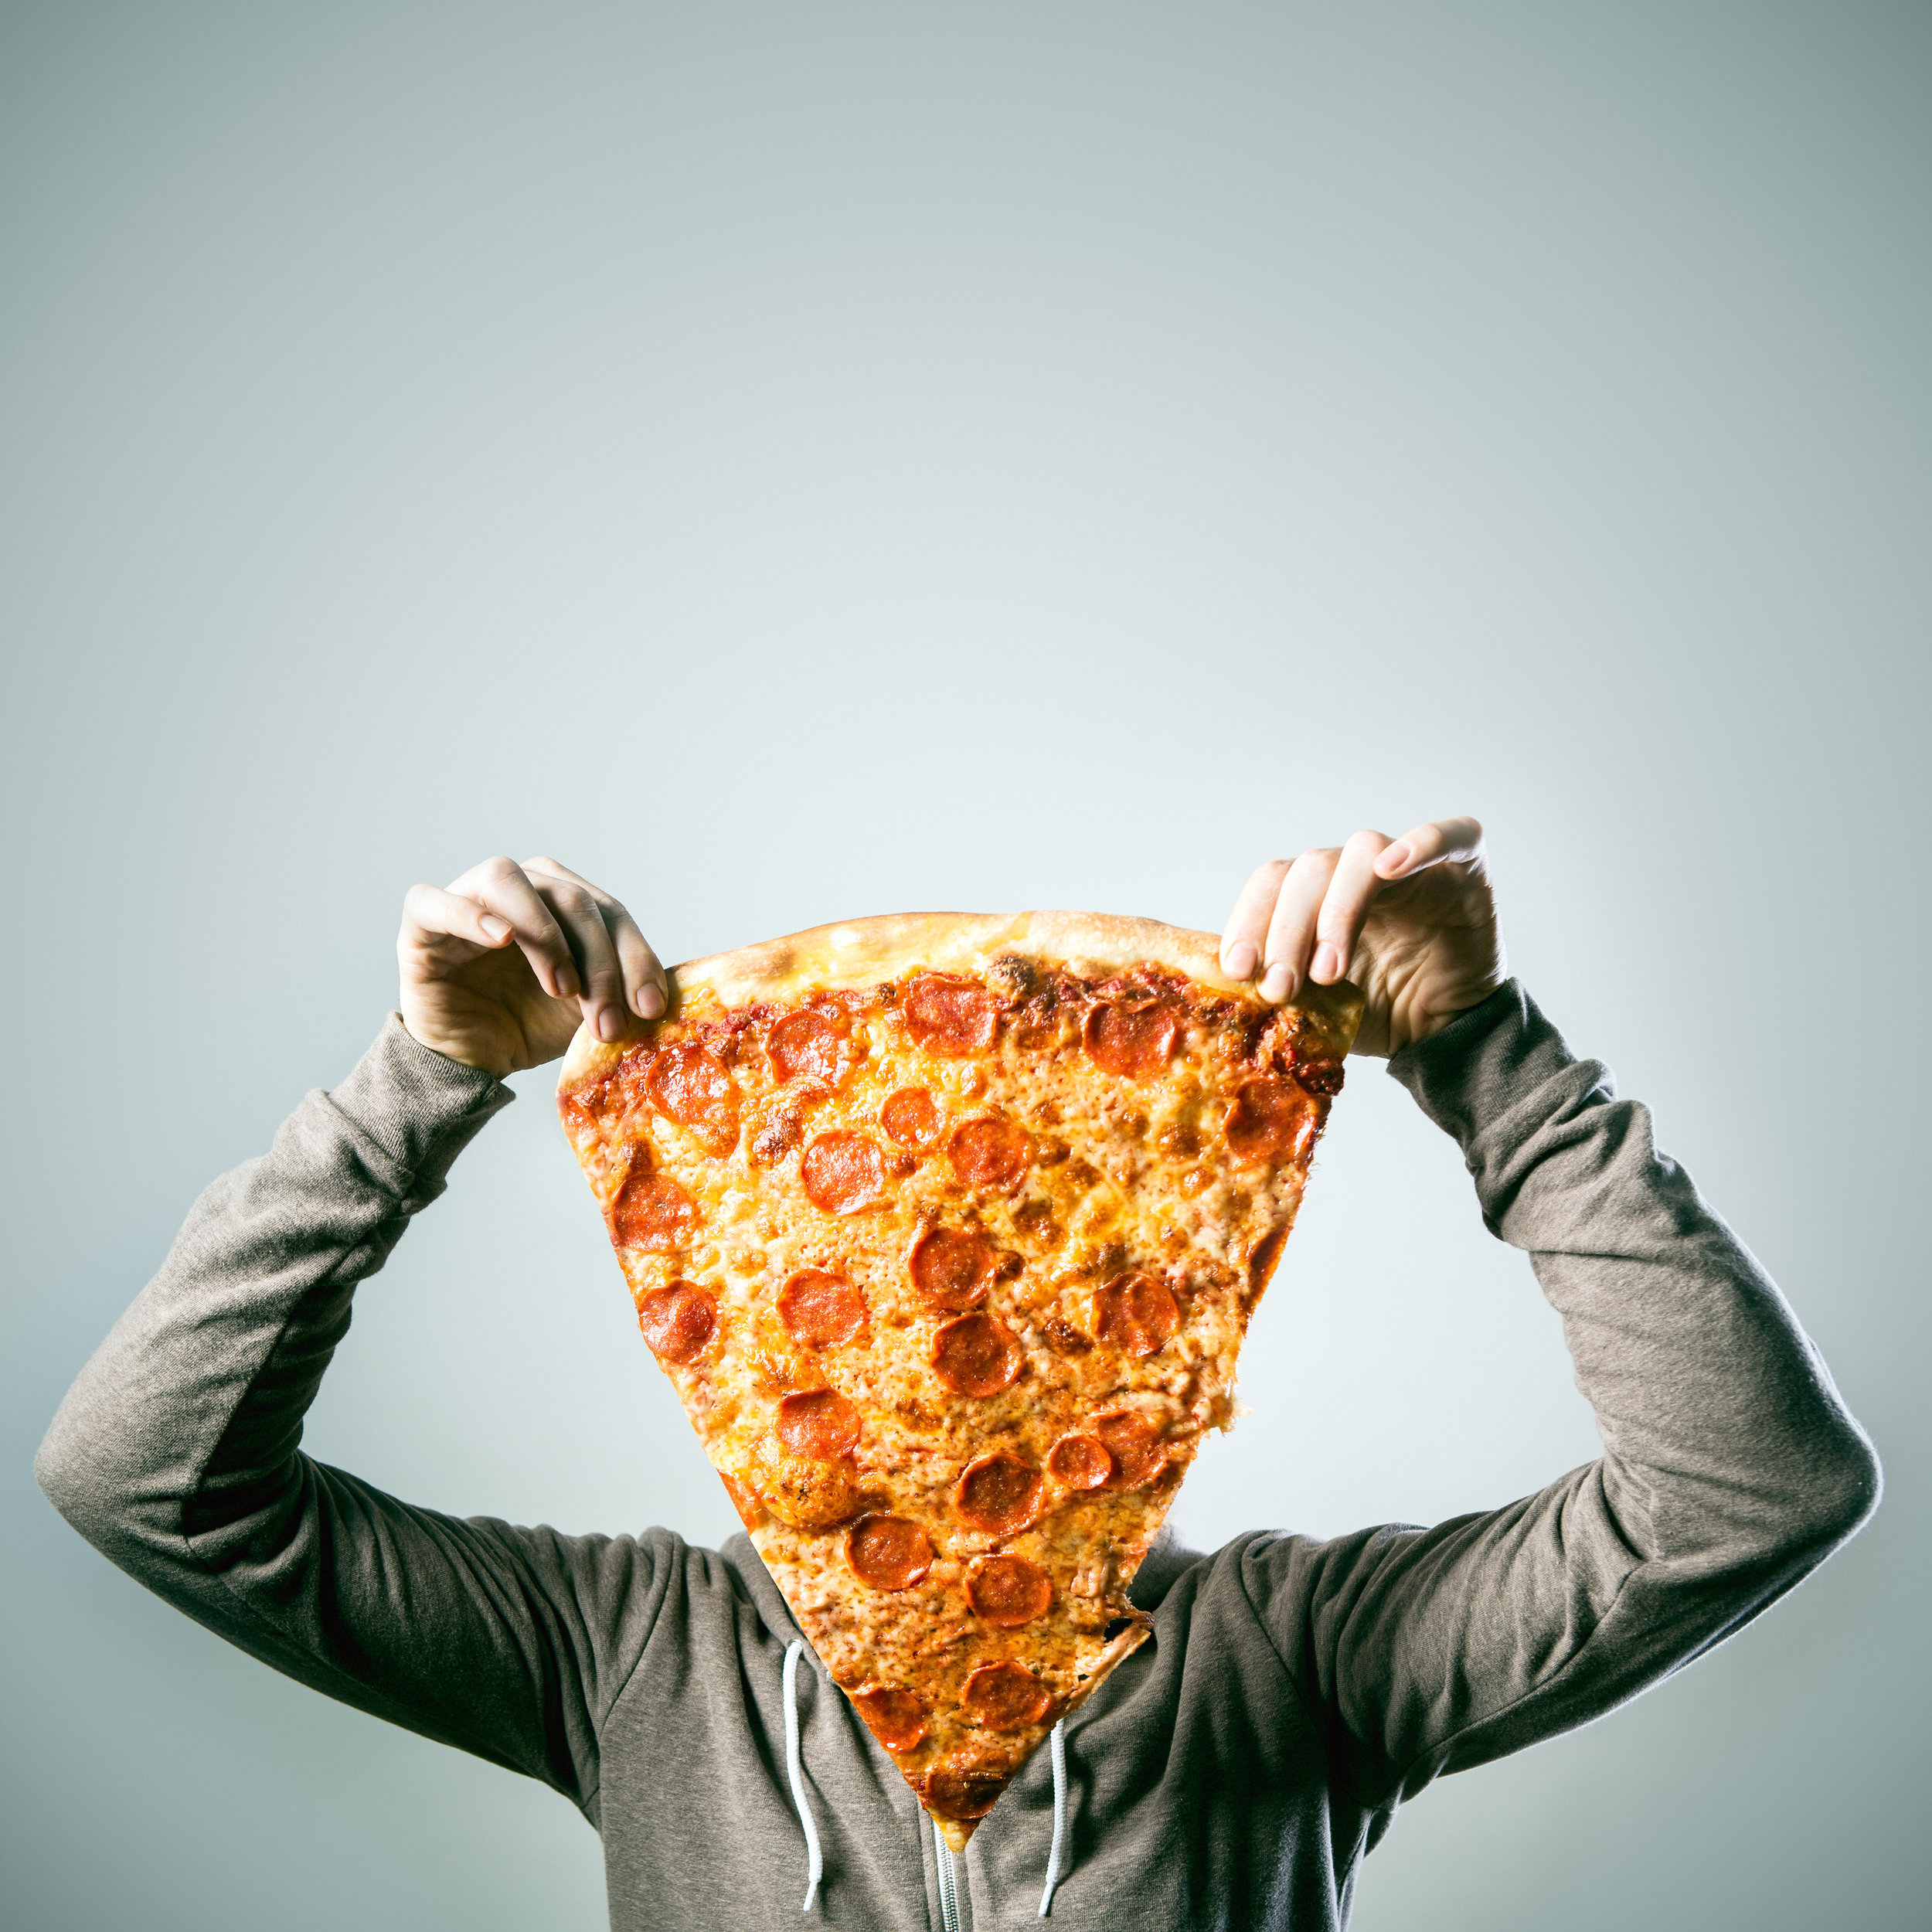 I hope you don't like pizza…because you can't have it on keto!